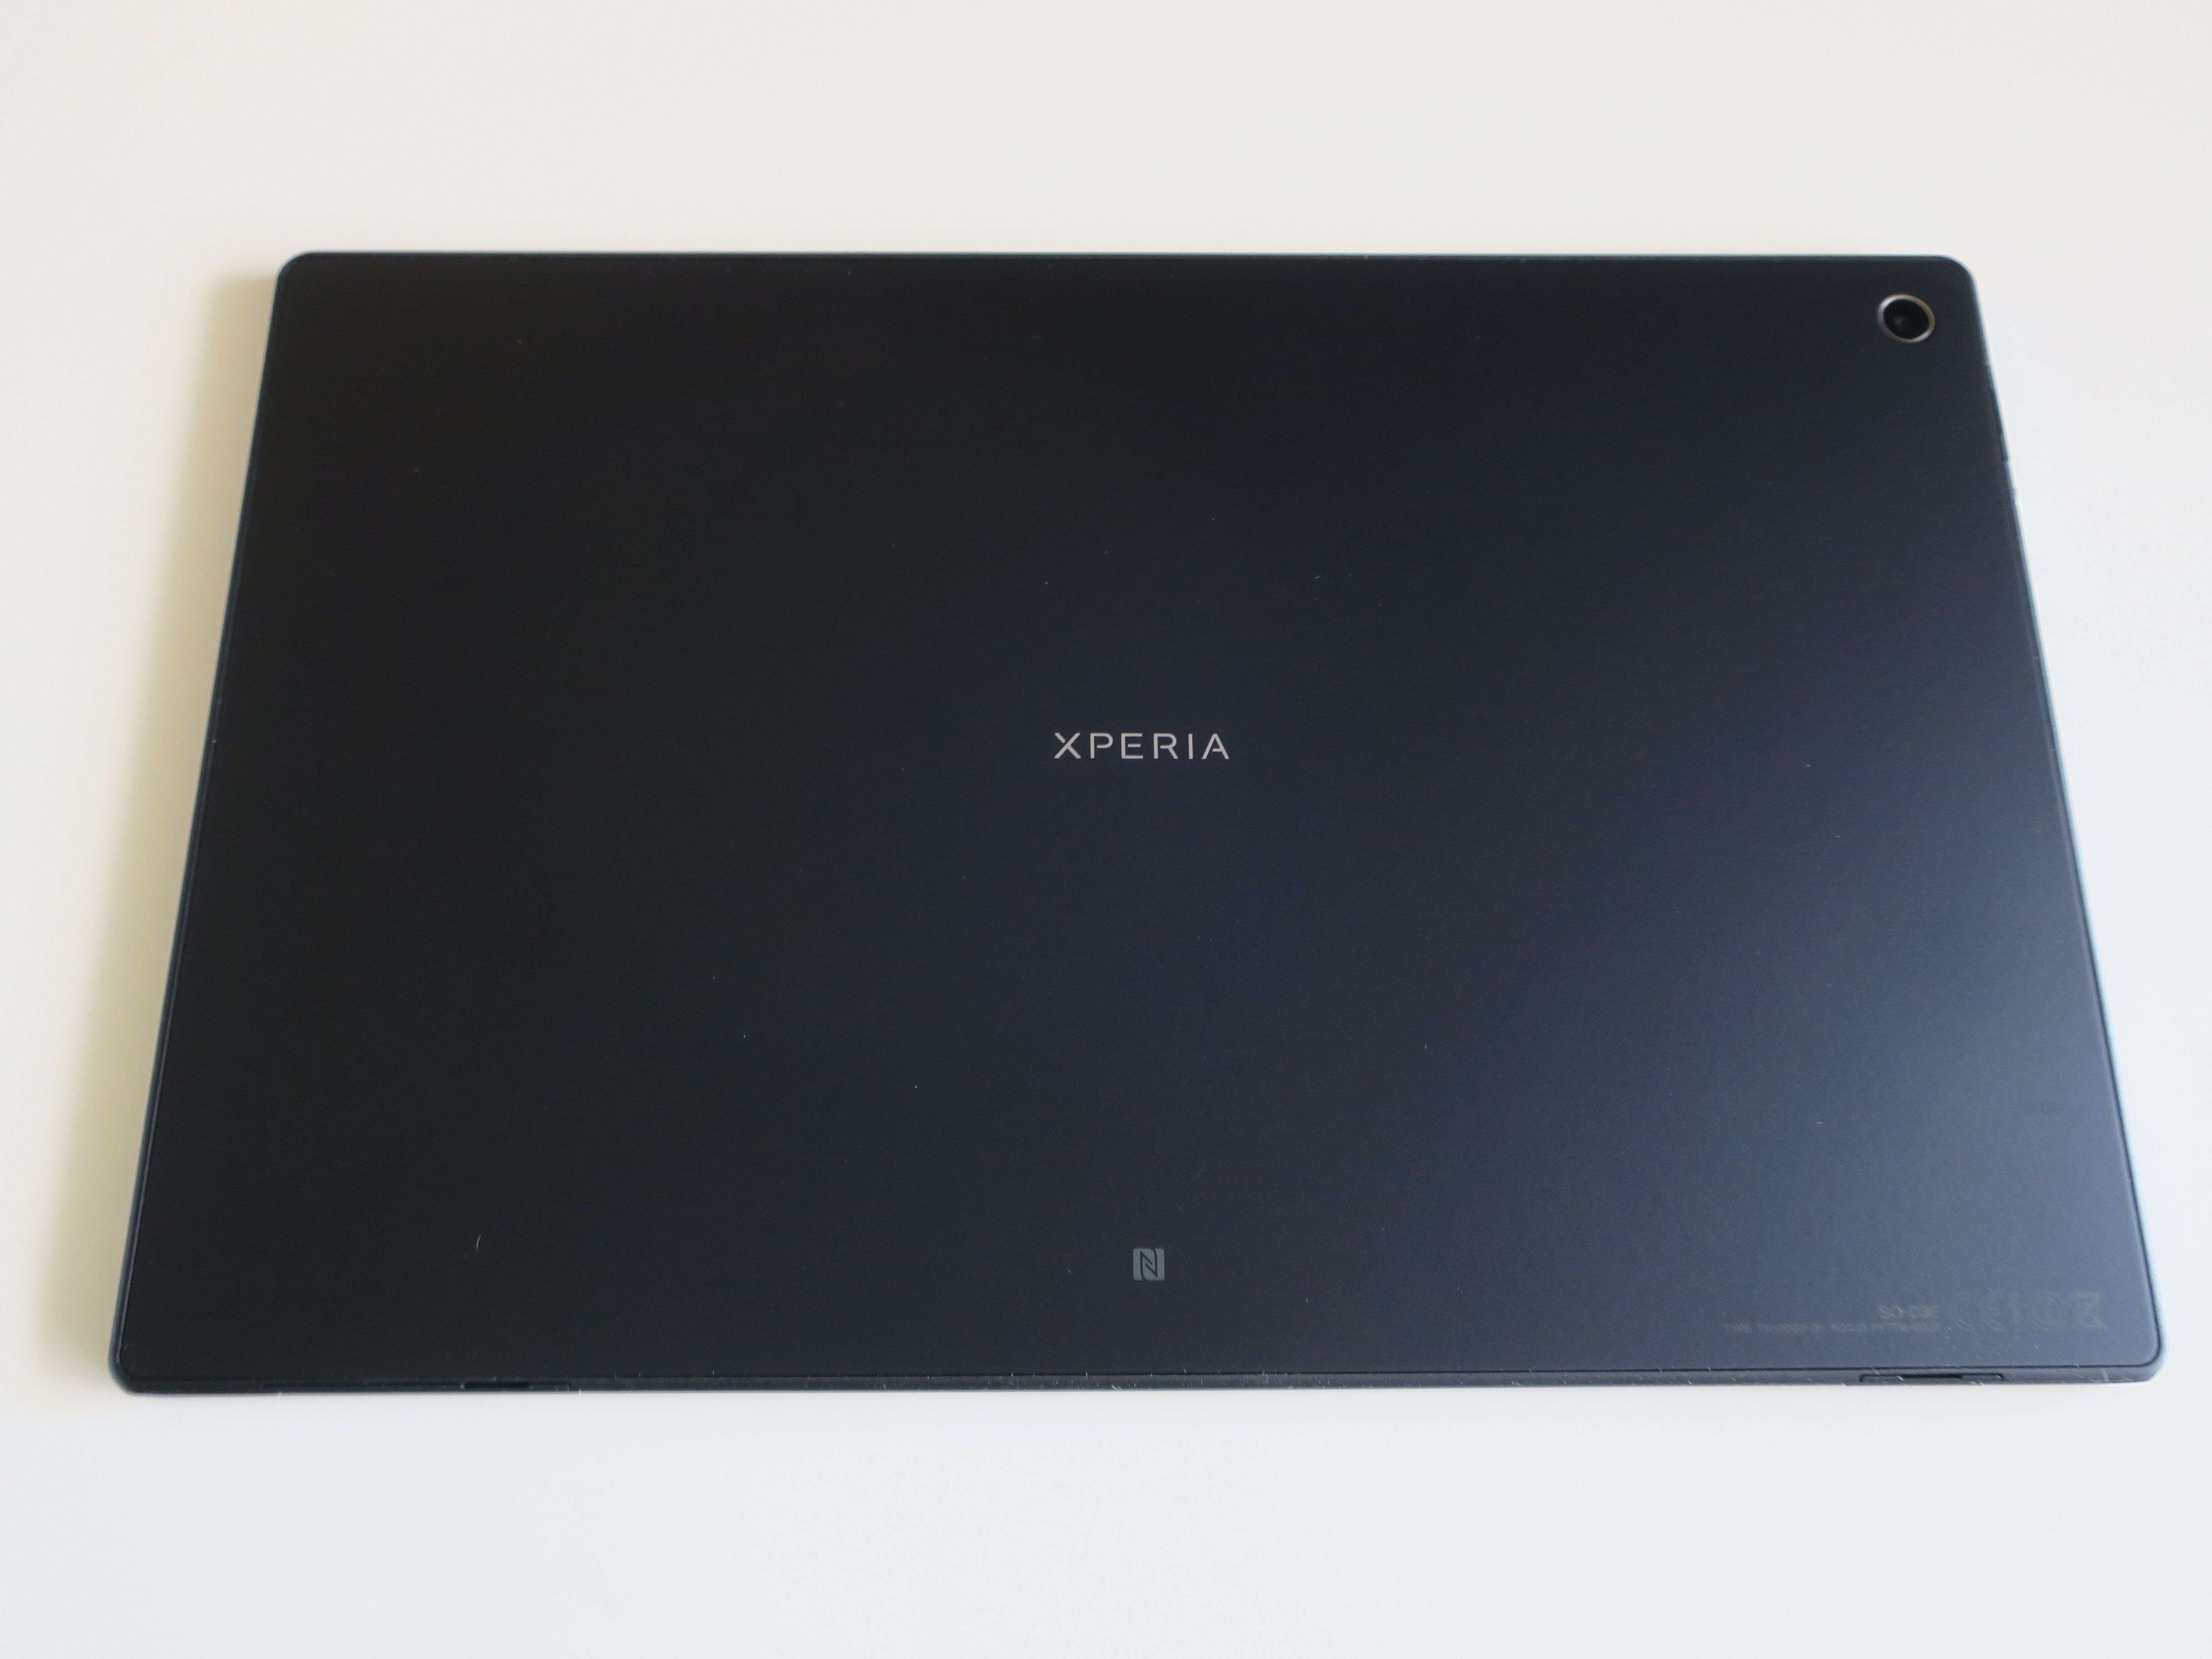 SONY Xperia Tablet Z Wi-Fiモデル SGP312JP/W 防水対応10.1型液晶搭載Androidタブレット